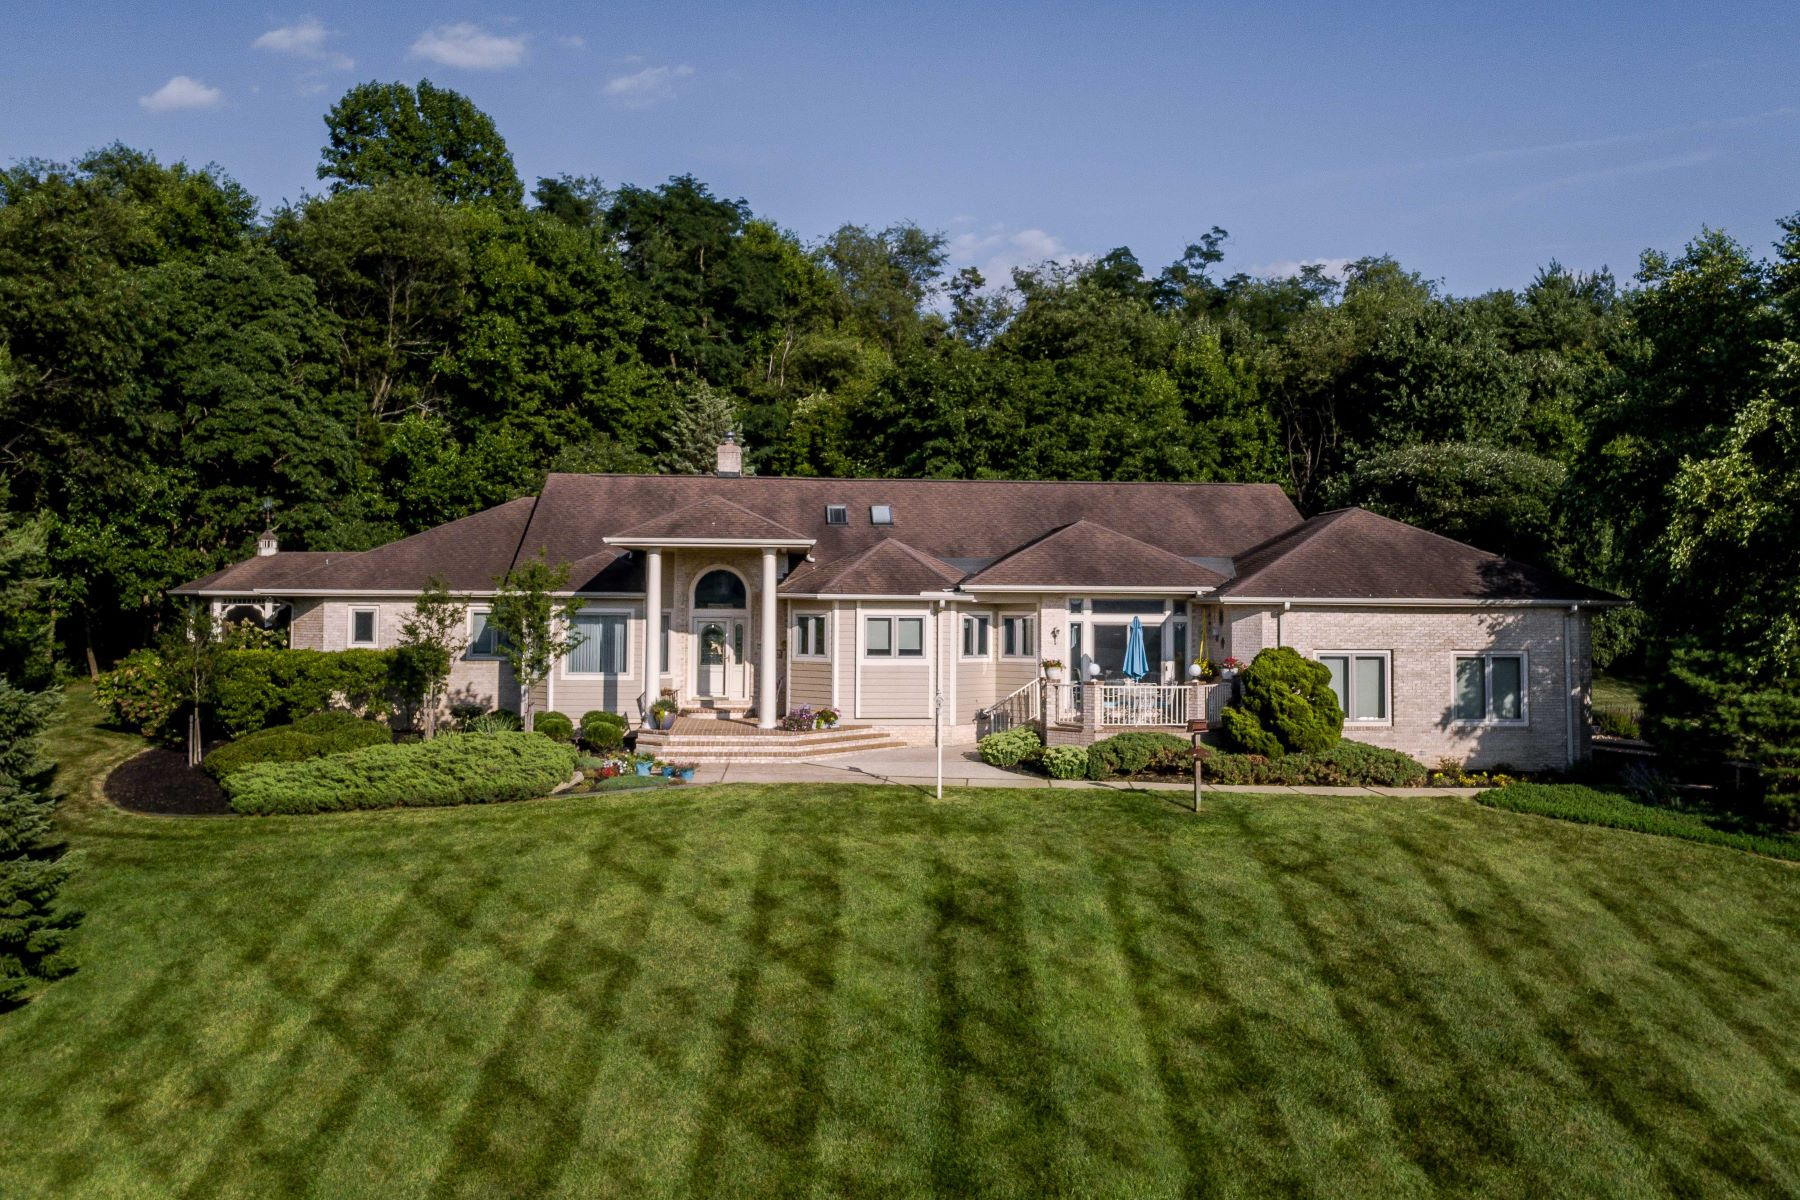 Single Family Home for Sale at 1629 Goldsmith Drive Westminster, Maryland 21157 United States